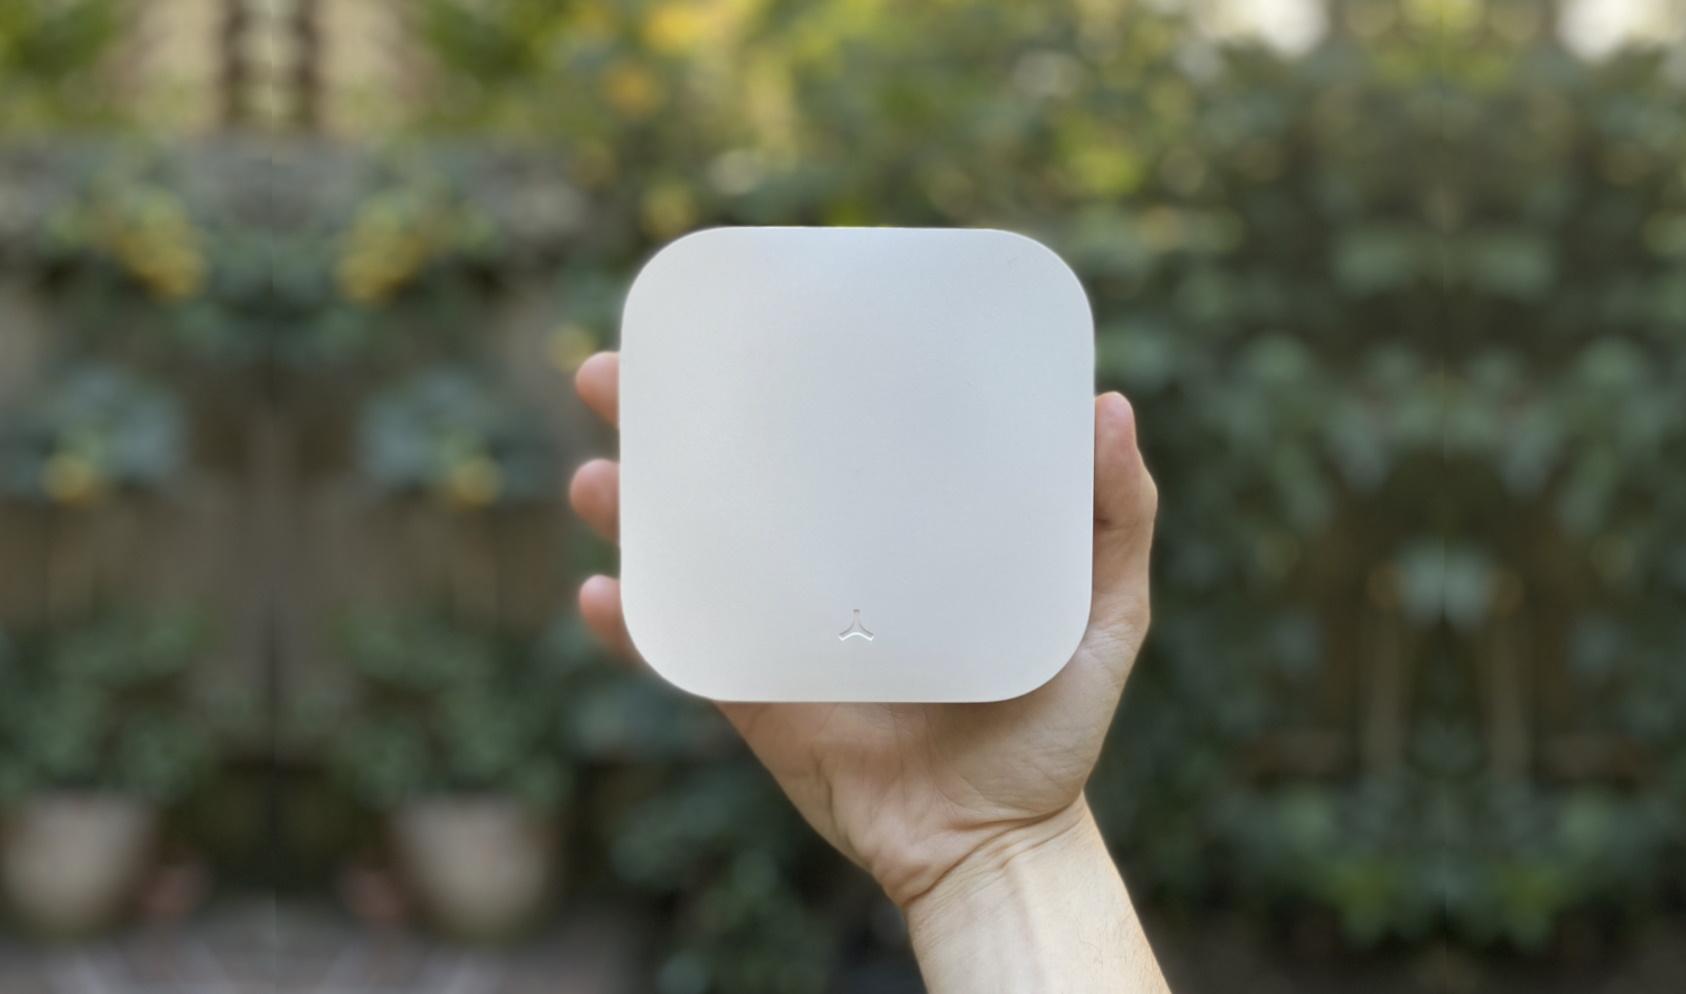 Density's Open Area radar tracks people in a space, precisely but anonymously